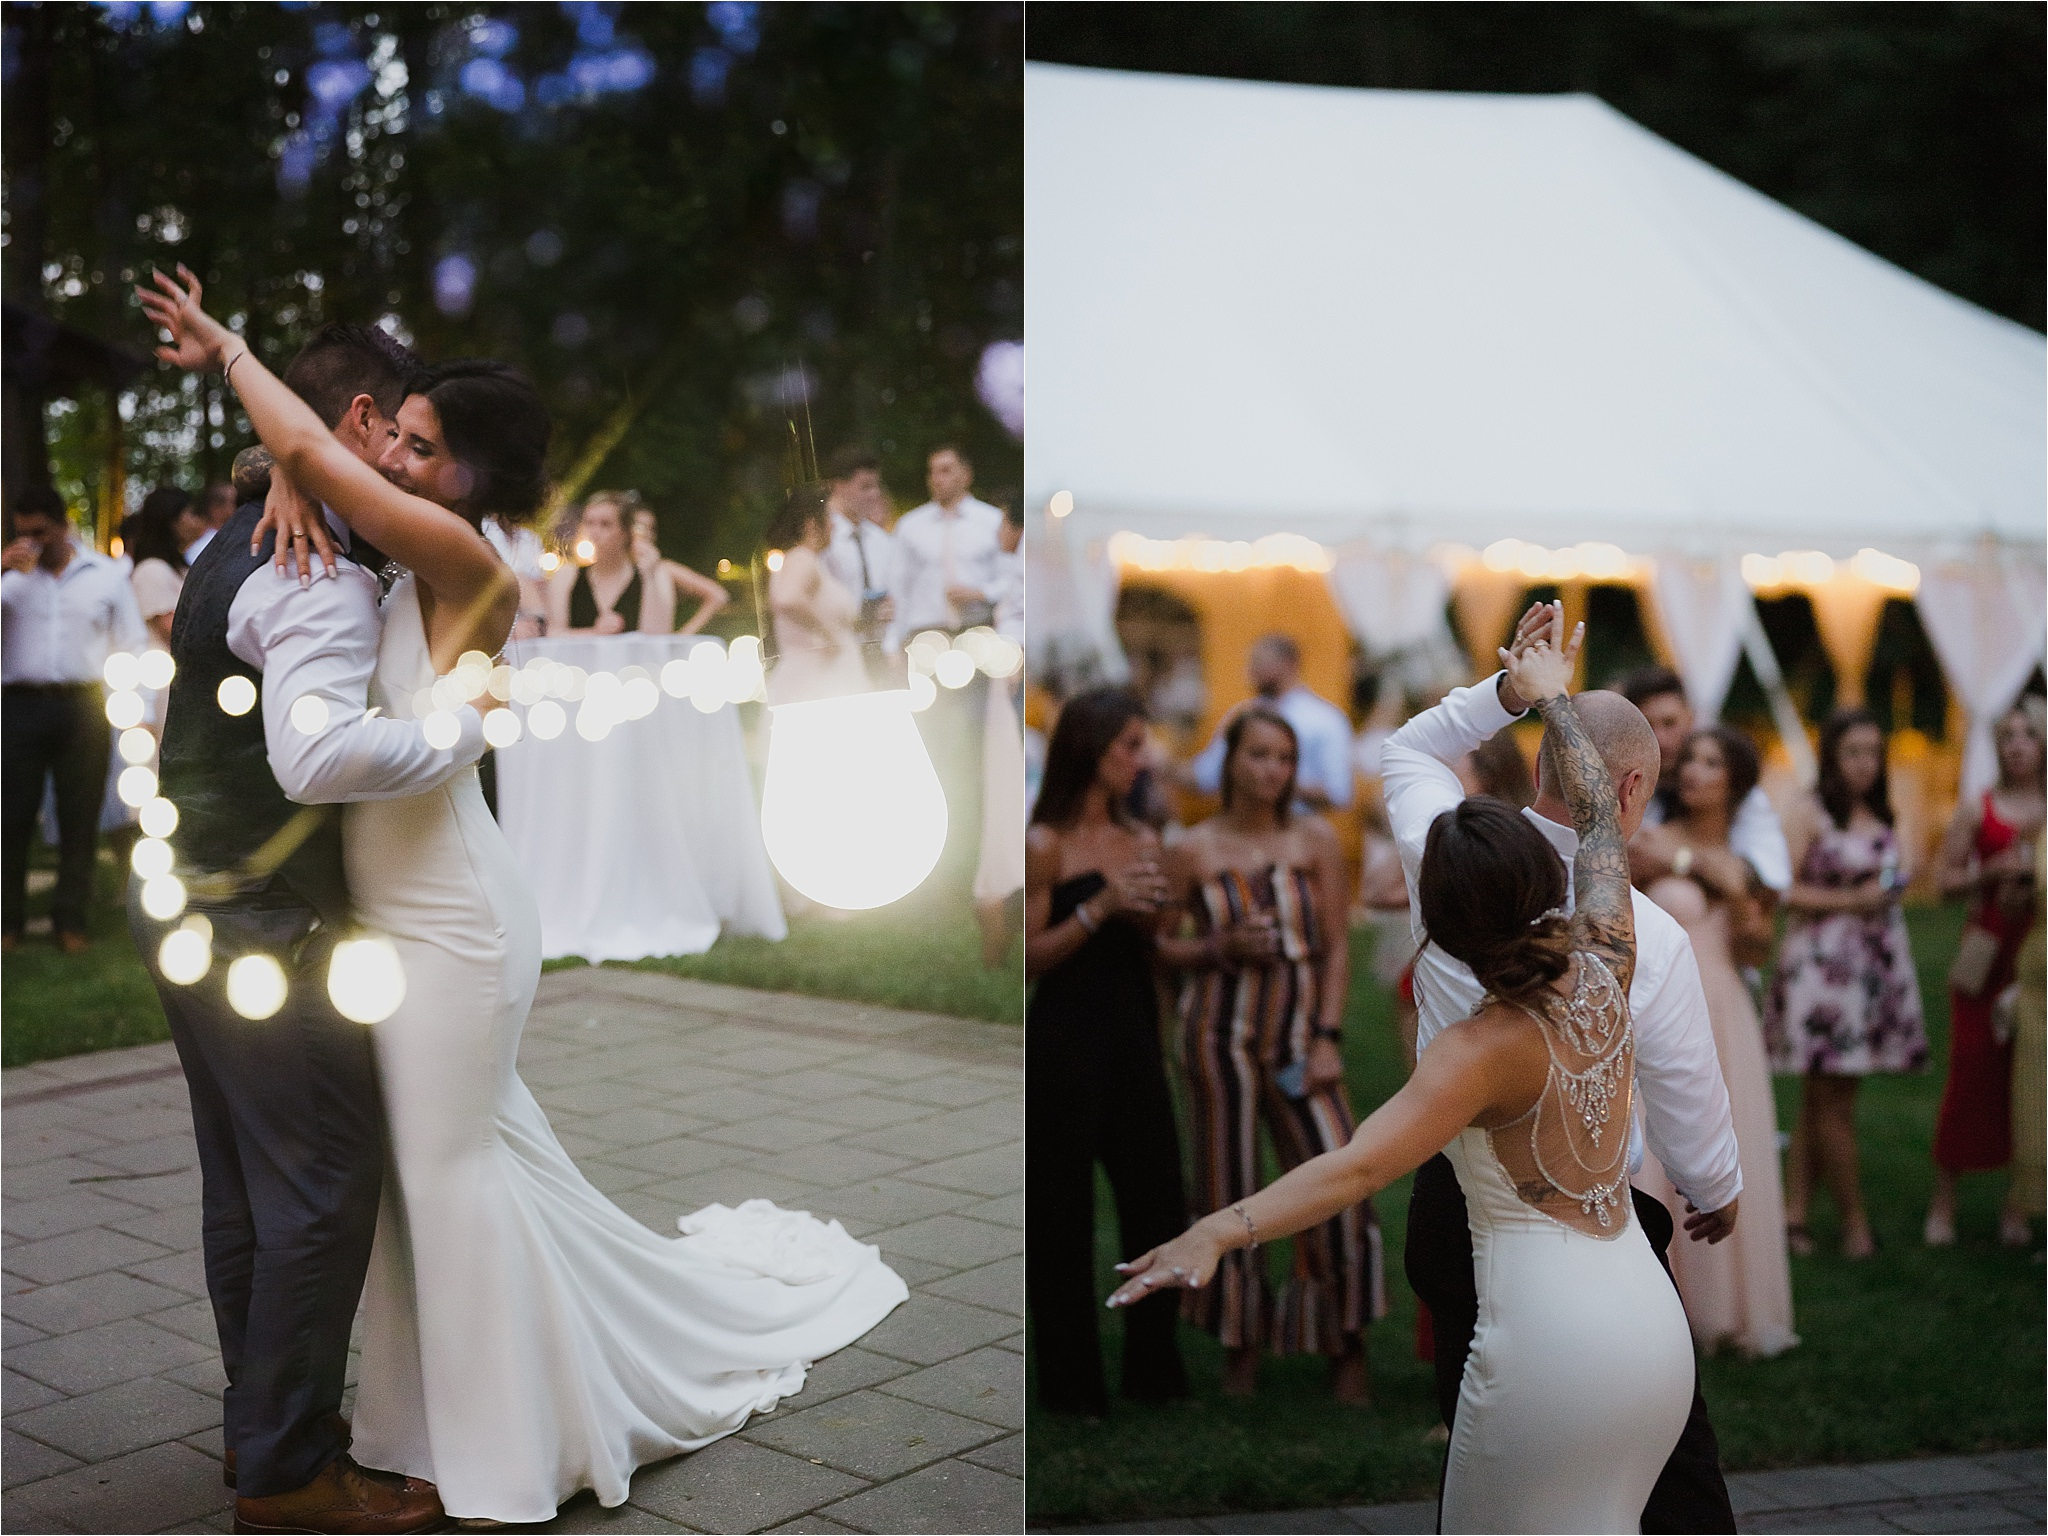 Sonia V Photography, The Clearing reception wedding venue, first dance with bride and groom and bride and father